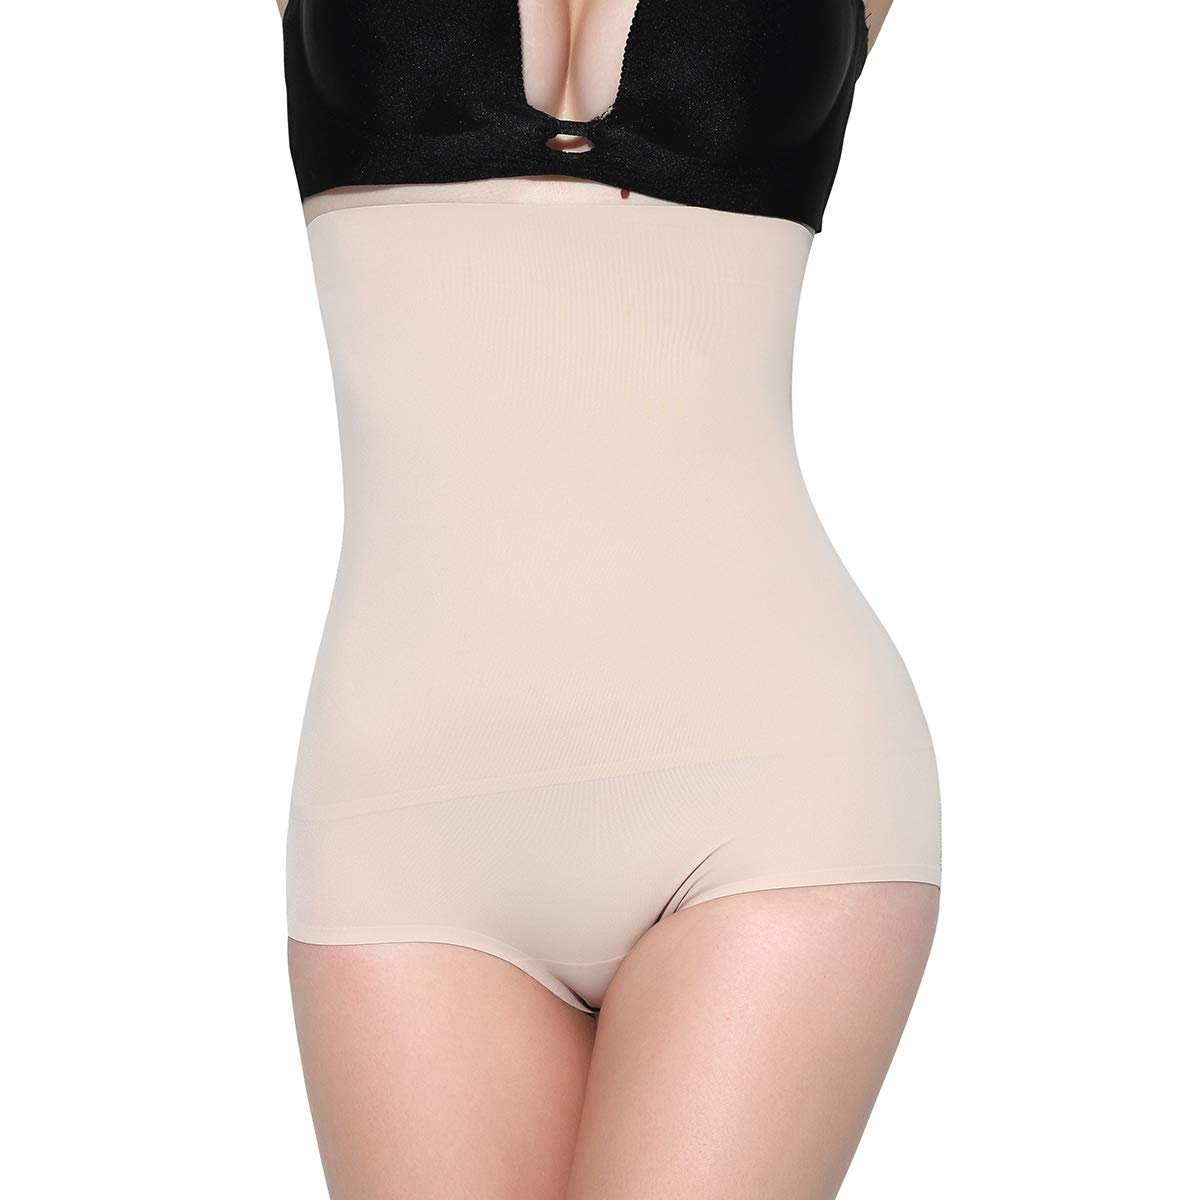 d884f4339e8b5 MOVWIN Women s Tummy Control Shapewear High Waist Seamless Body Shaper  Thigh Slimmer Butt Lifter Panties at Amazon Women s Clothing store